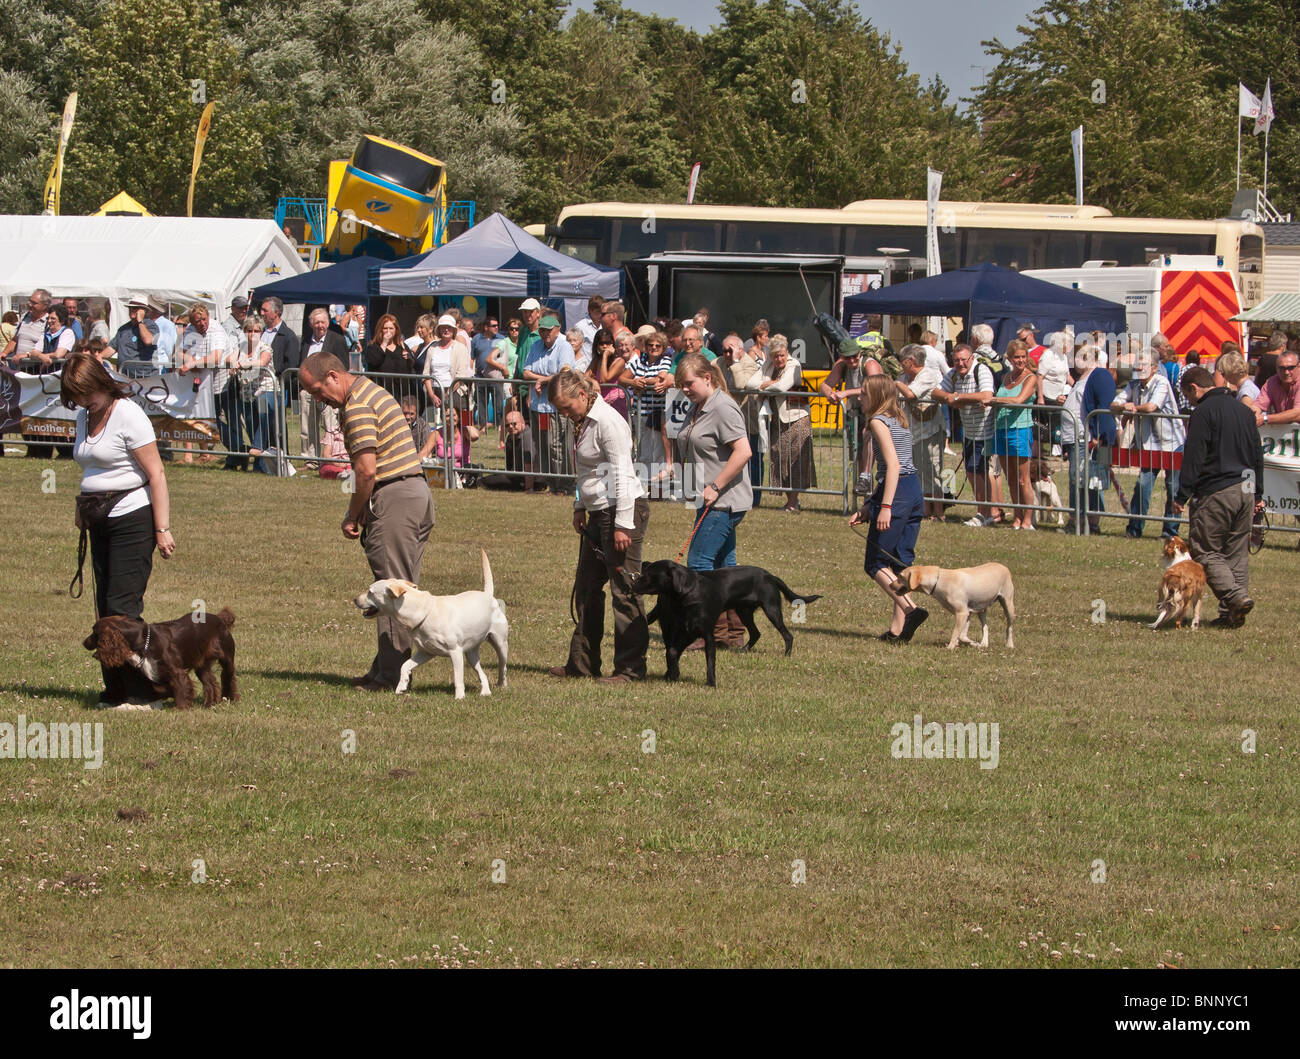 Dog handling class demonstration at Driffield Agricultural Show July 2010 - Stock Image